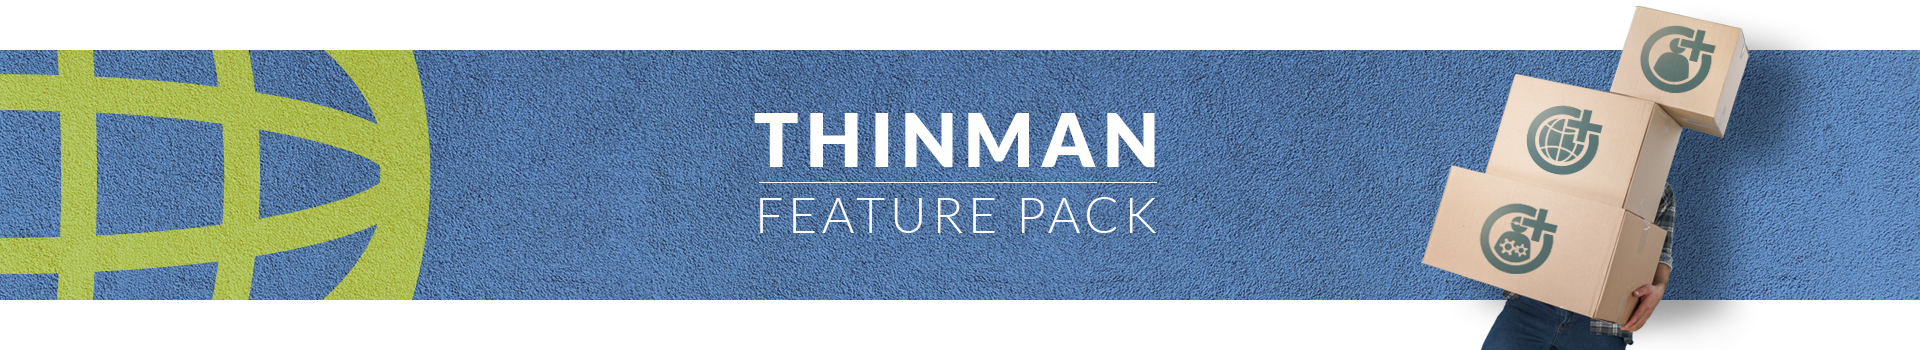 ThinMan Feature Pack